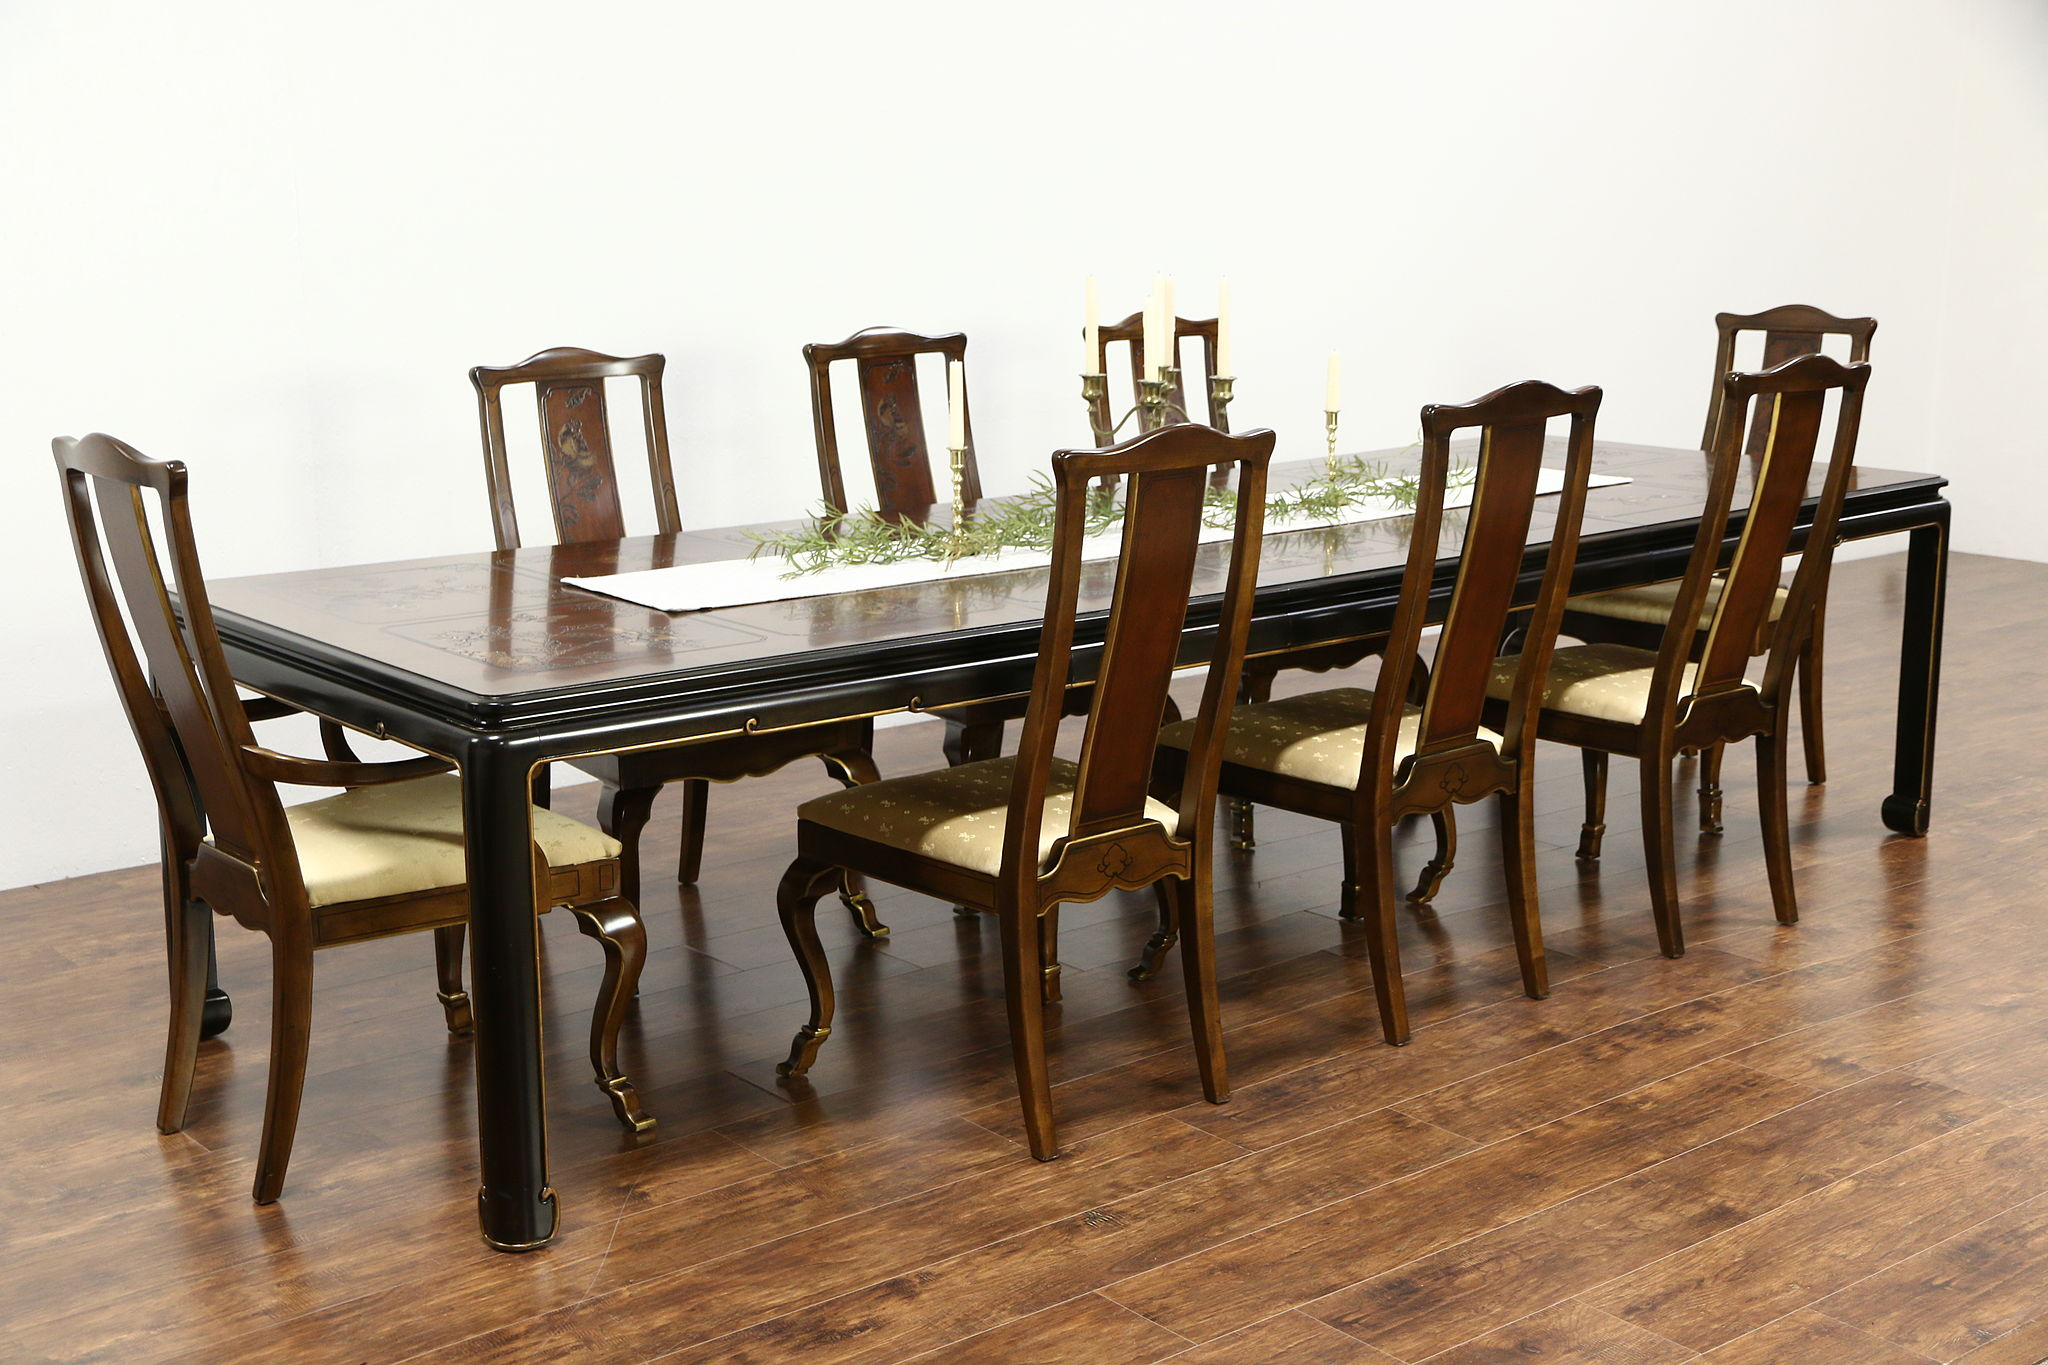 Dining Table 8 Chairs Drexel Heritage Connoisseur Chinese Motif Vintage Dining Set Table 8 Chairs